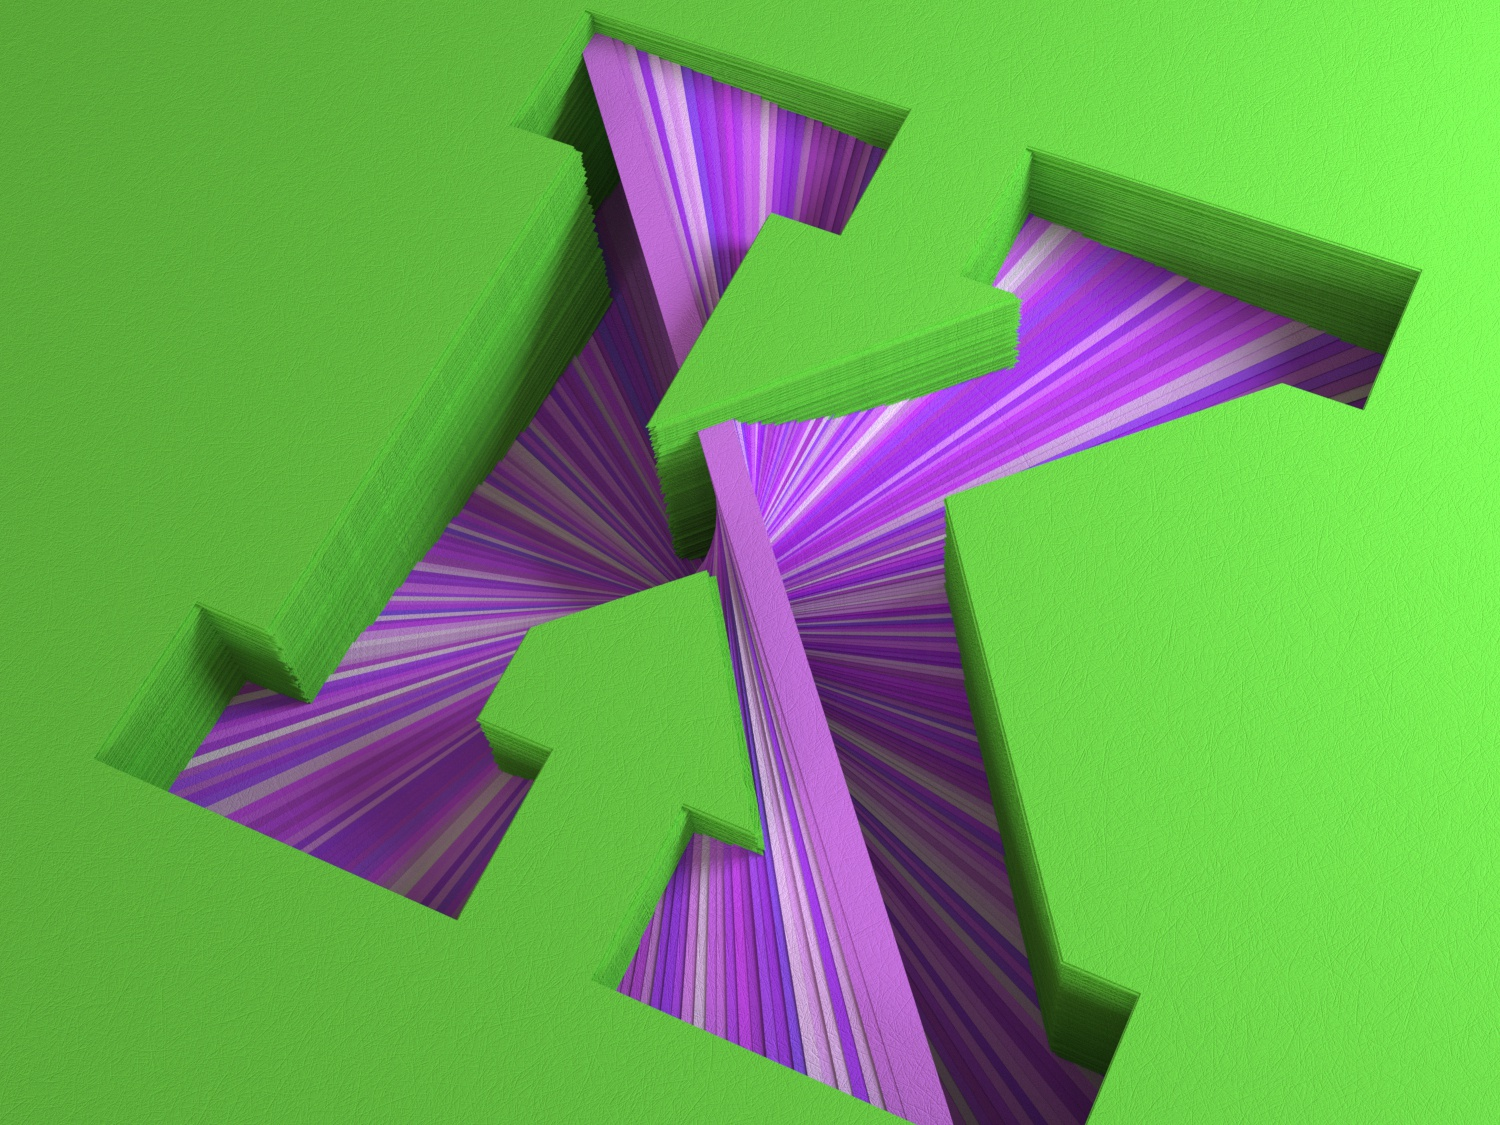 Paper K for 36 Days of Type c4d everyday daily soy tico costa rica mrs. constancy cgi 3d